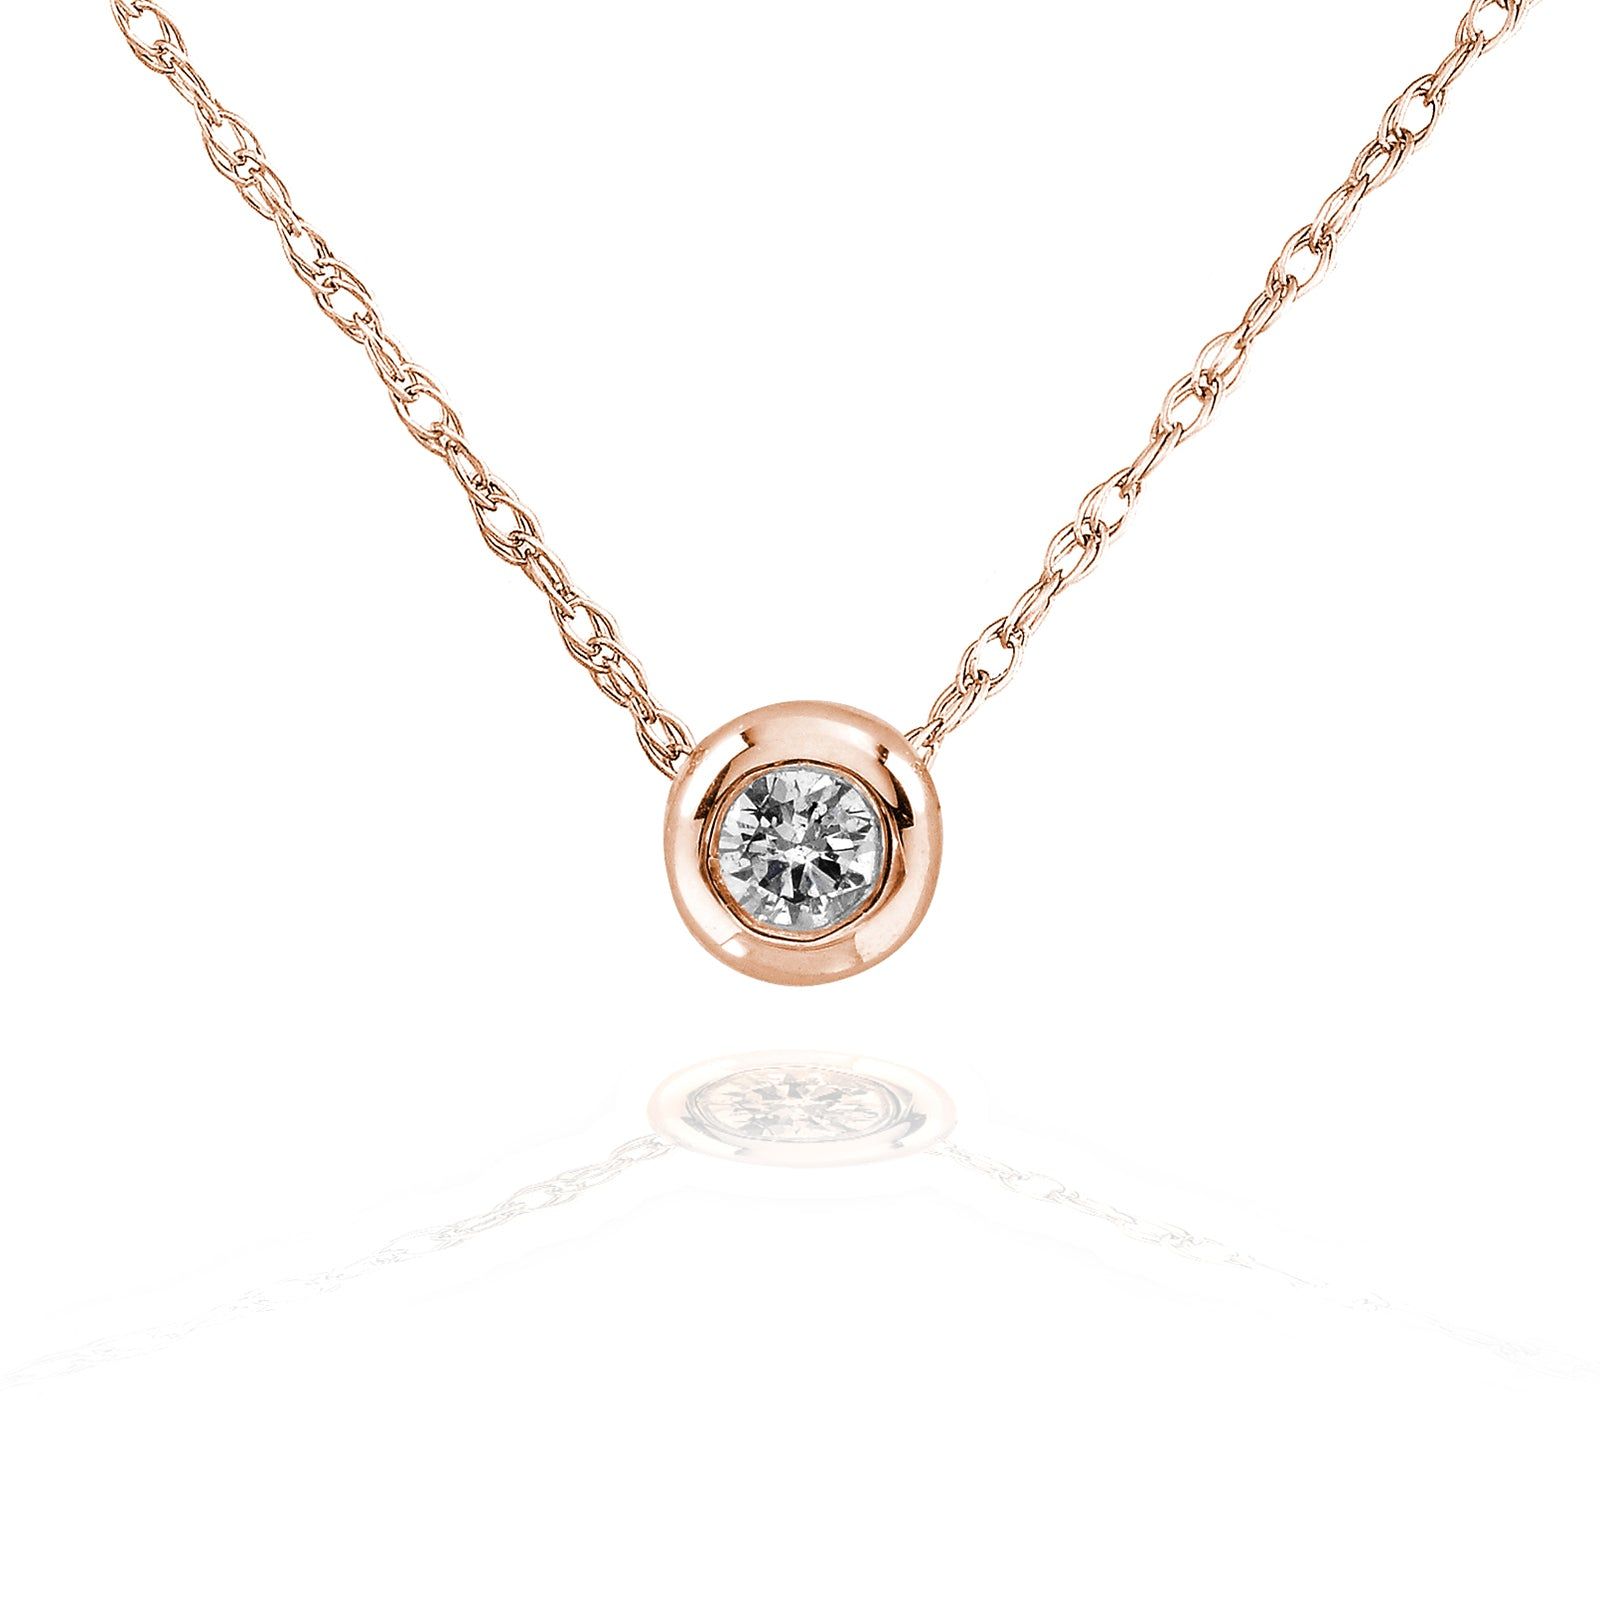 Compare Tiny Diamond Solitaire Bezel Necklace in 14k Gold (18 Chain) - rose-gold